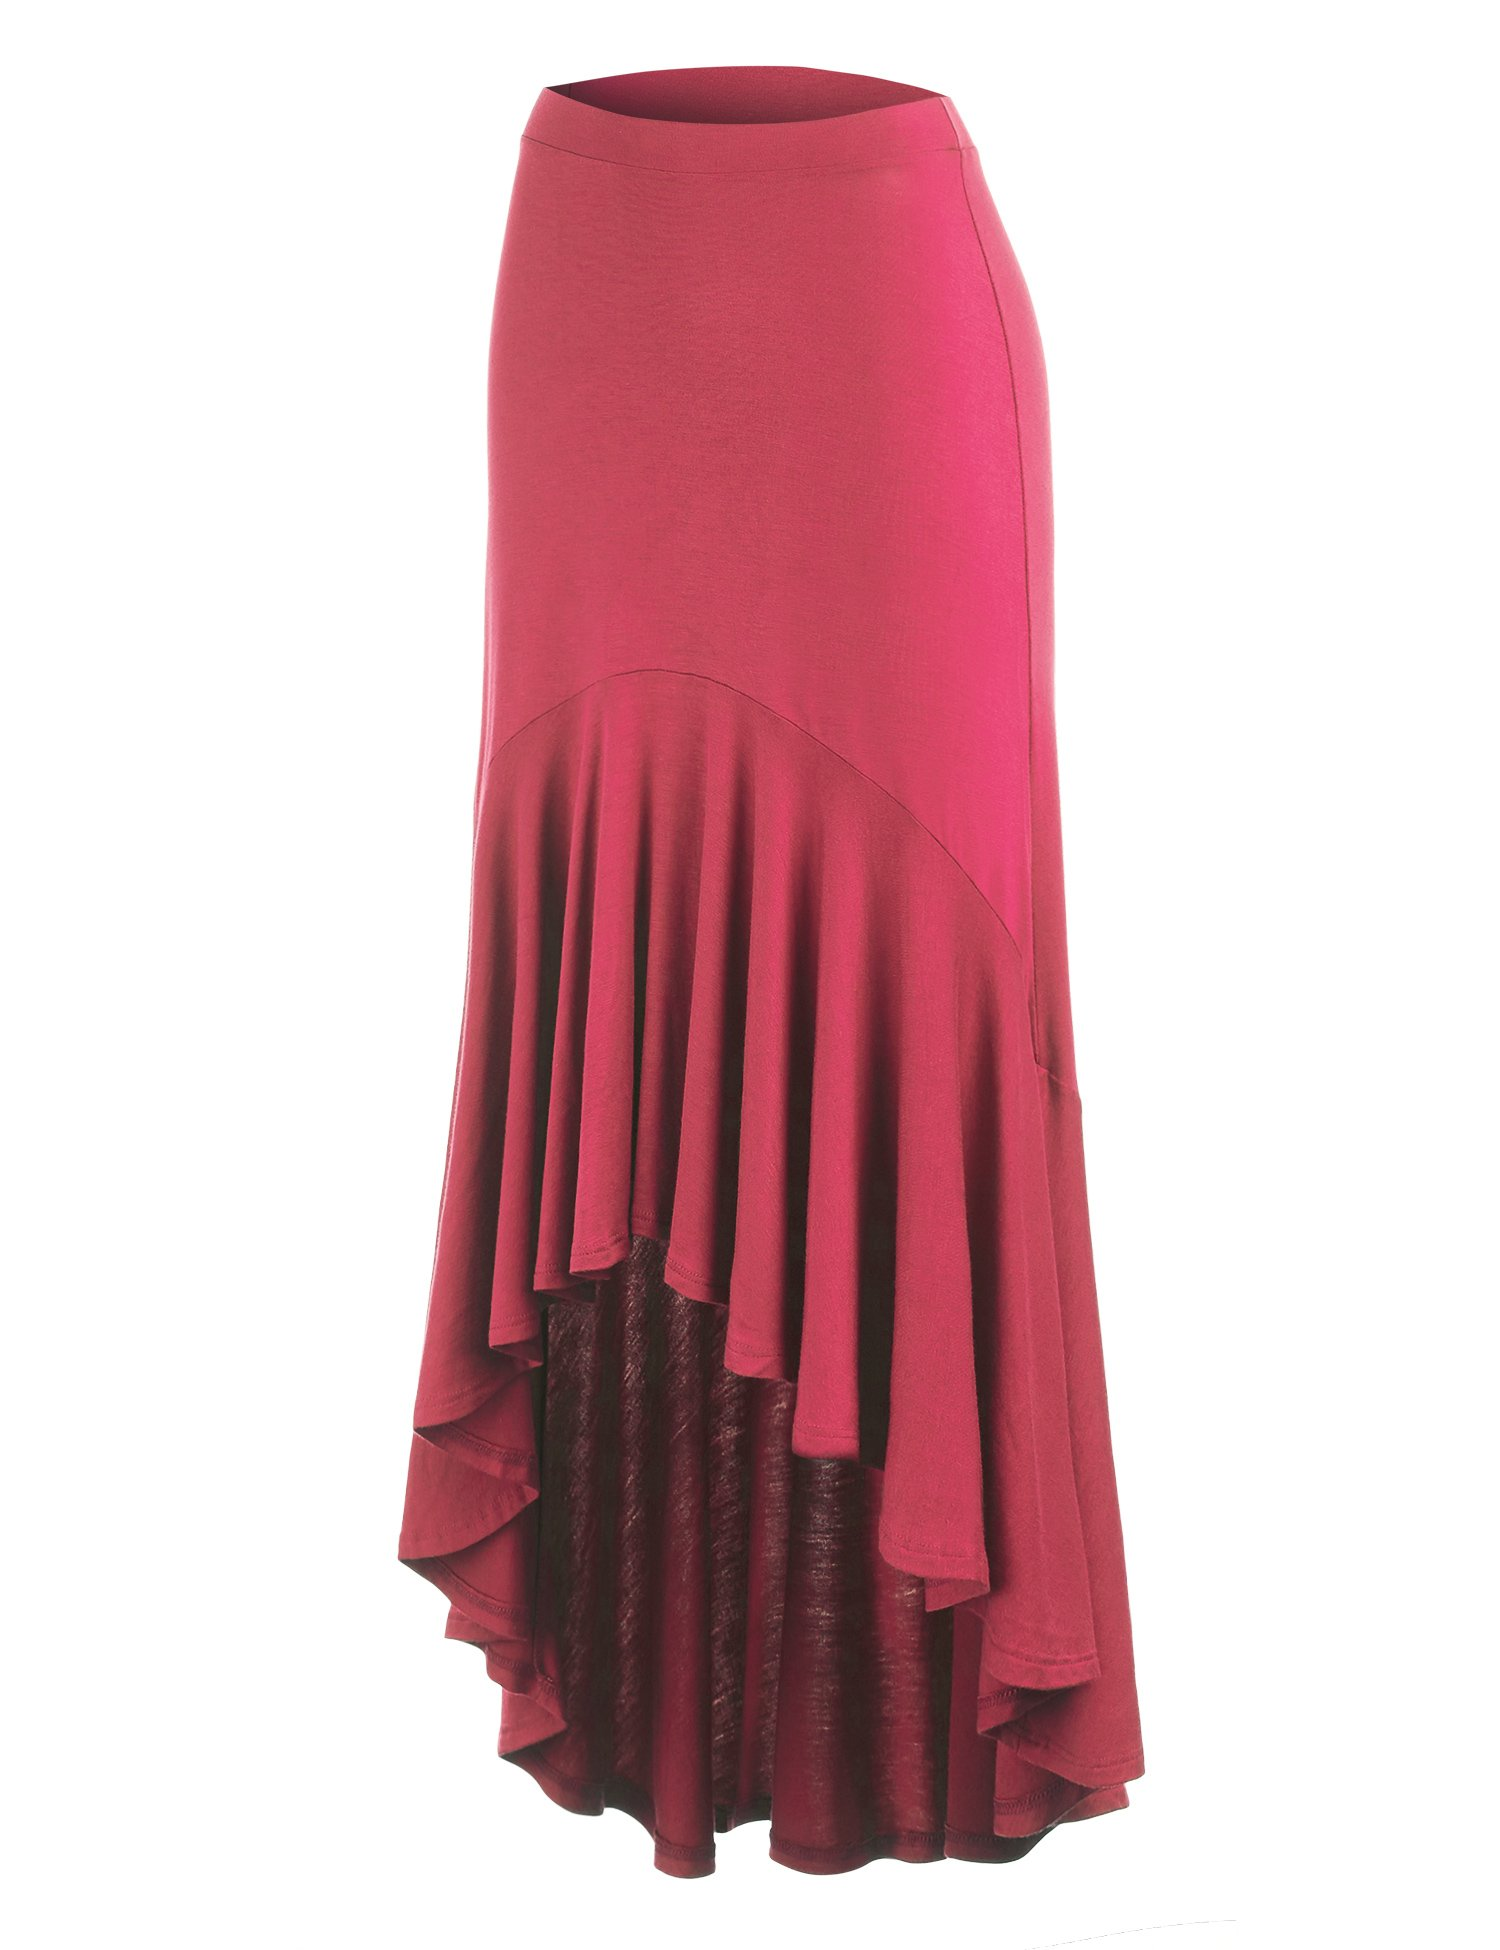 Made By Johnny WB1132 Womens Asymmetrical High Low Ruffle Hem Skirt S Coral